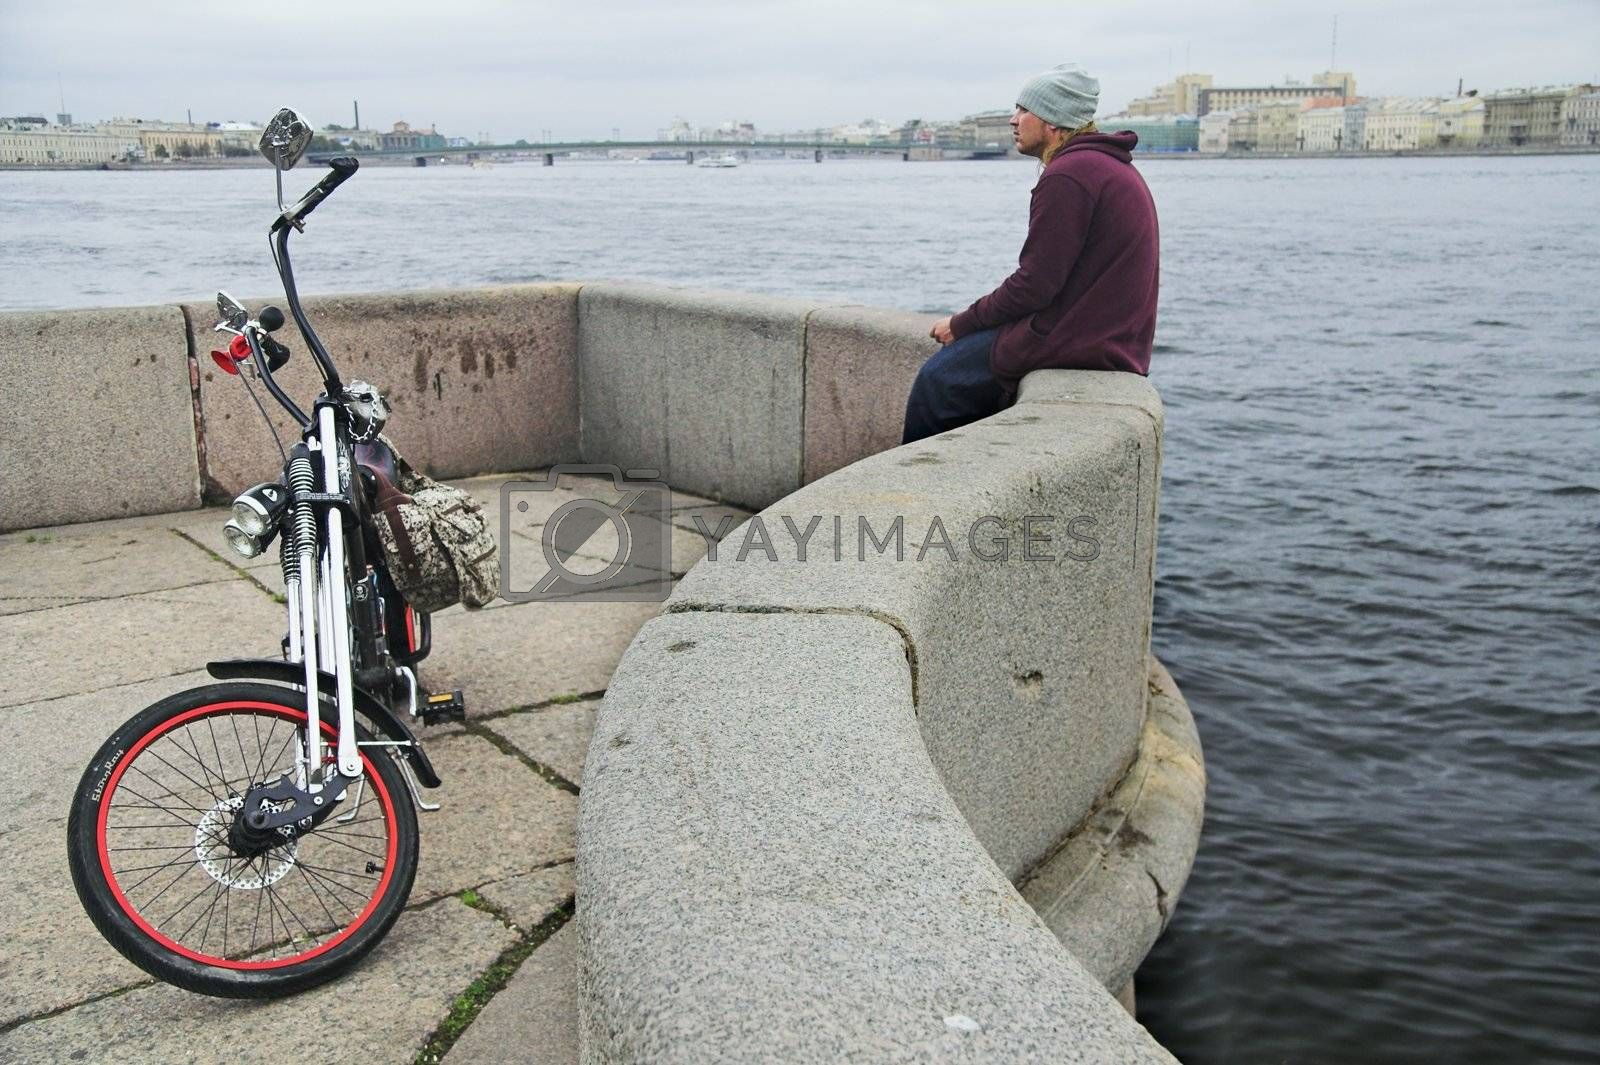 cyclist and his bicycle on granite river embankment